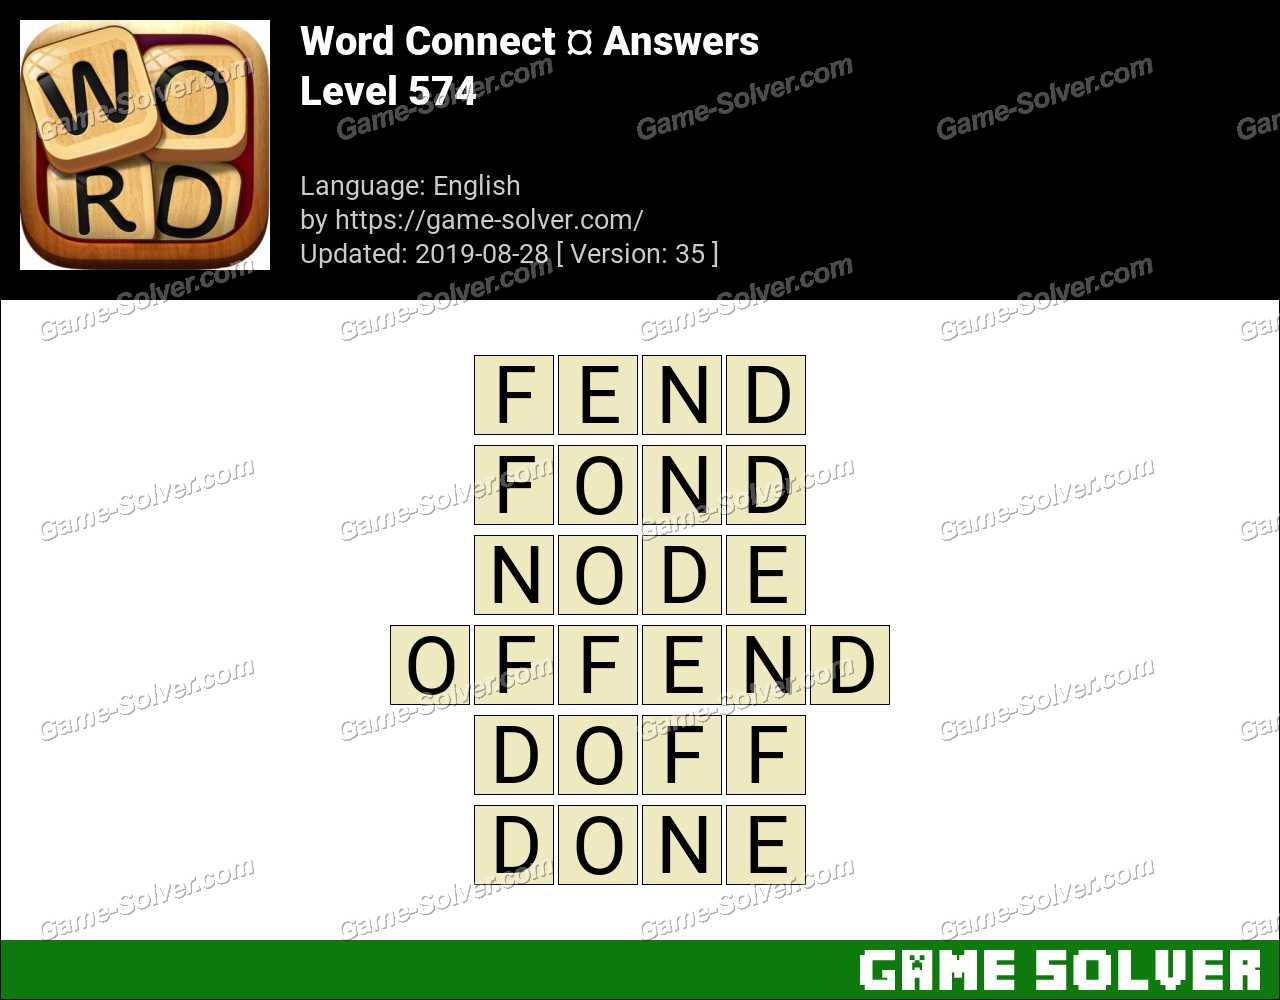 Word Connect Level 574 Answers